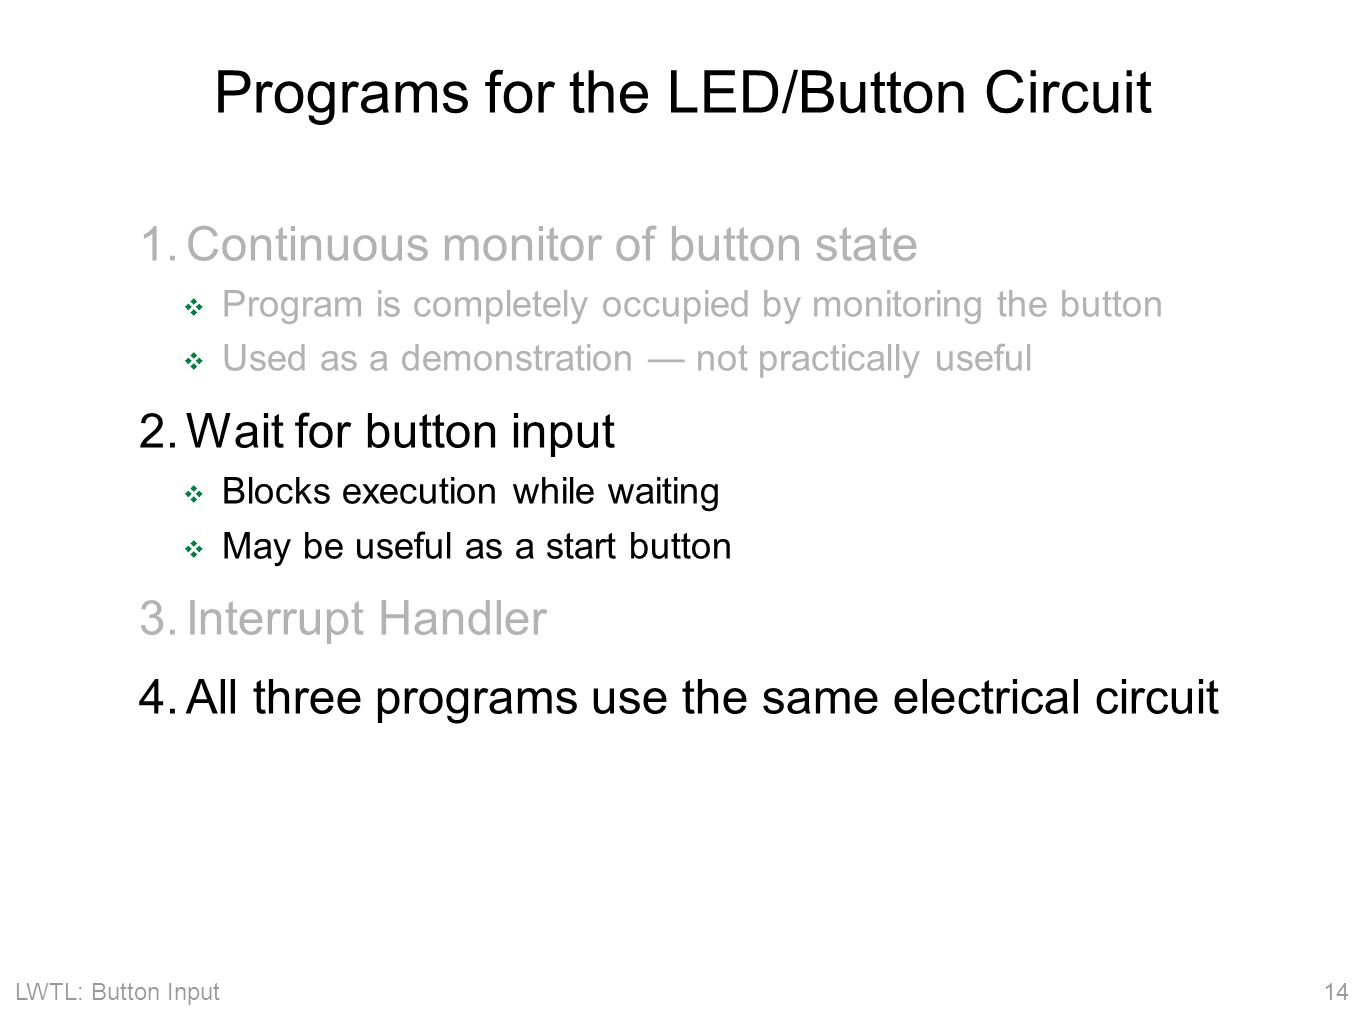 LWTL: Button Input 14 Programs for the LED/Button Circuit 1.Continuous monitor of button state ❖ Program is completely occupied by monitoring the button ❖ Used as a demonstration — not practically useful 2.Wait for button input ❖ Blocks execution while waiting ❖ May be useful as a start button 3.Interrupt Handler 4.All three programs use the same electrical circuit